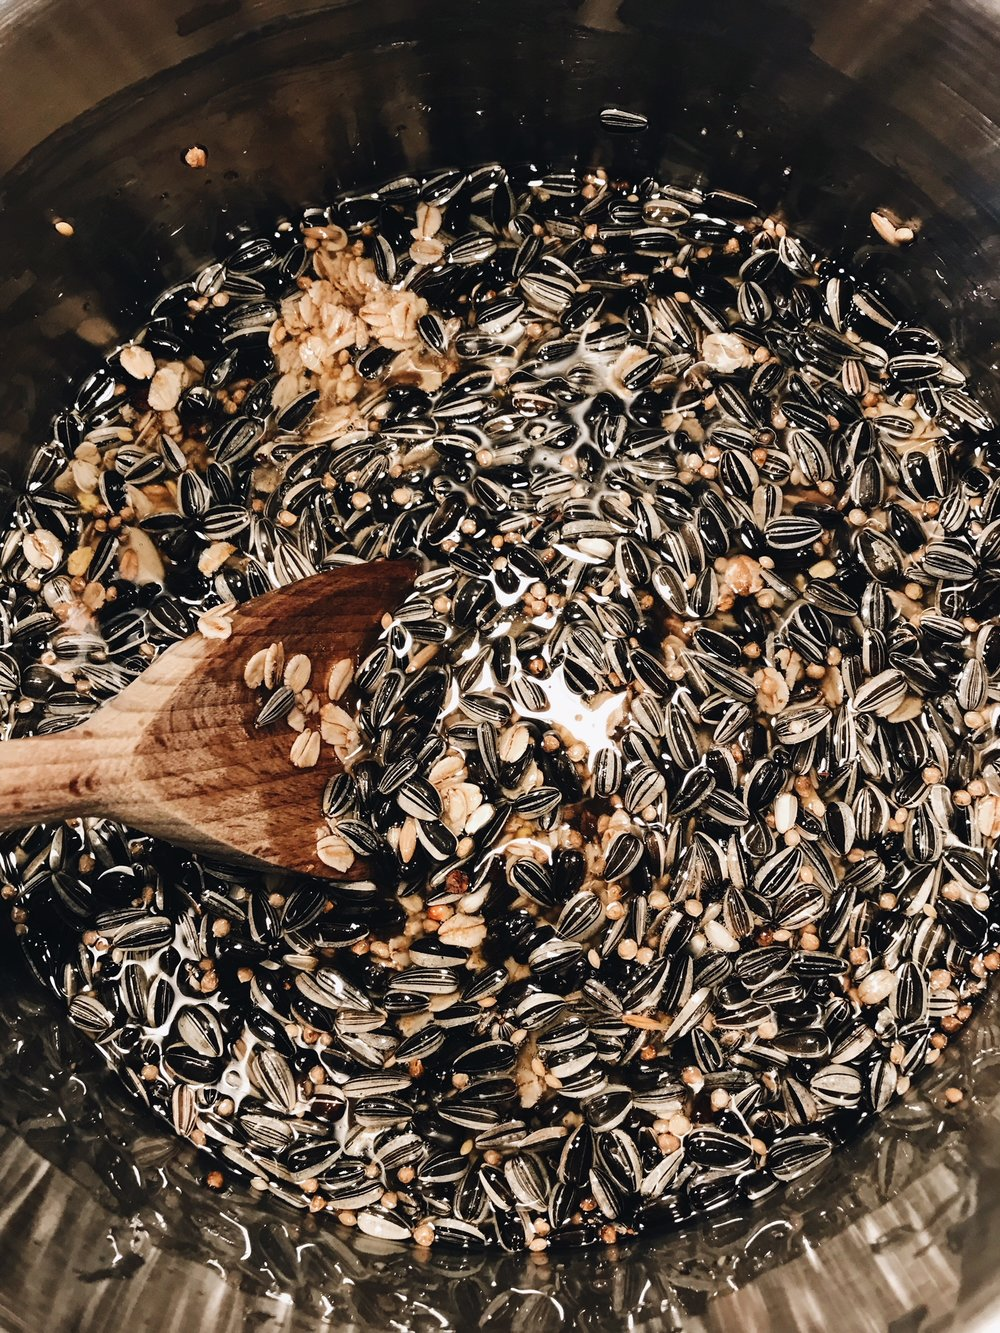 mixing bird seeds and lard